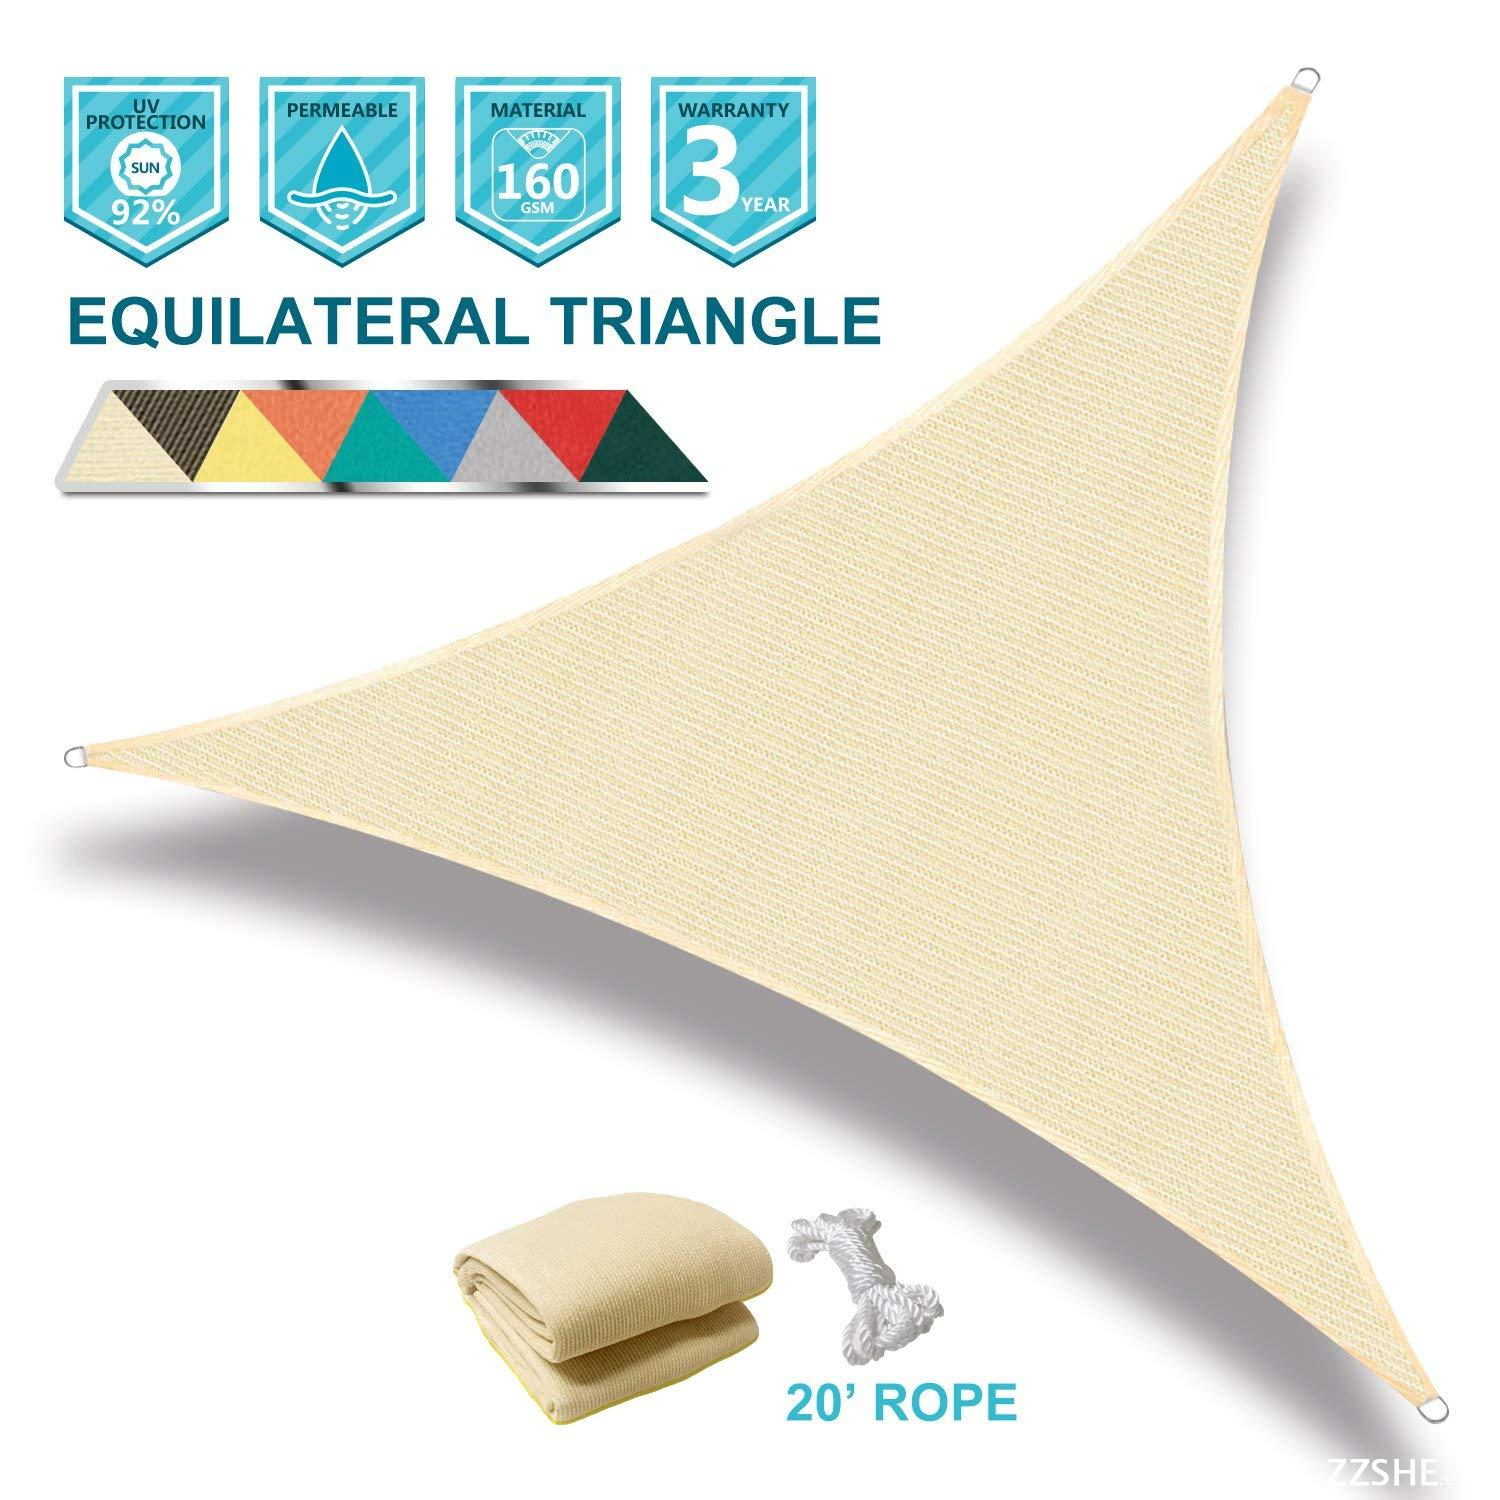 Coarbor 16' x 16' x 16' Triangle Beige UV Block Sun Shade Sail Perfect for Patio Outdoor Garden